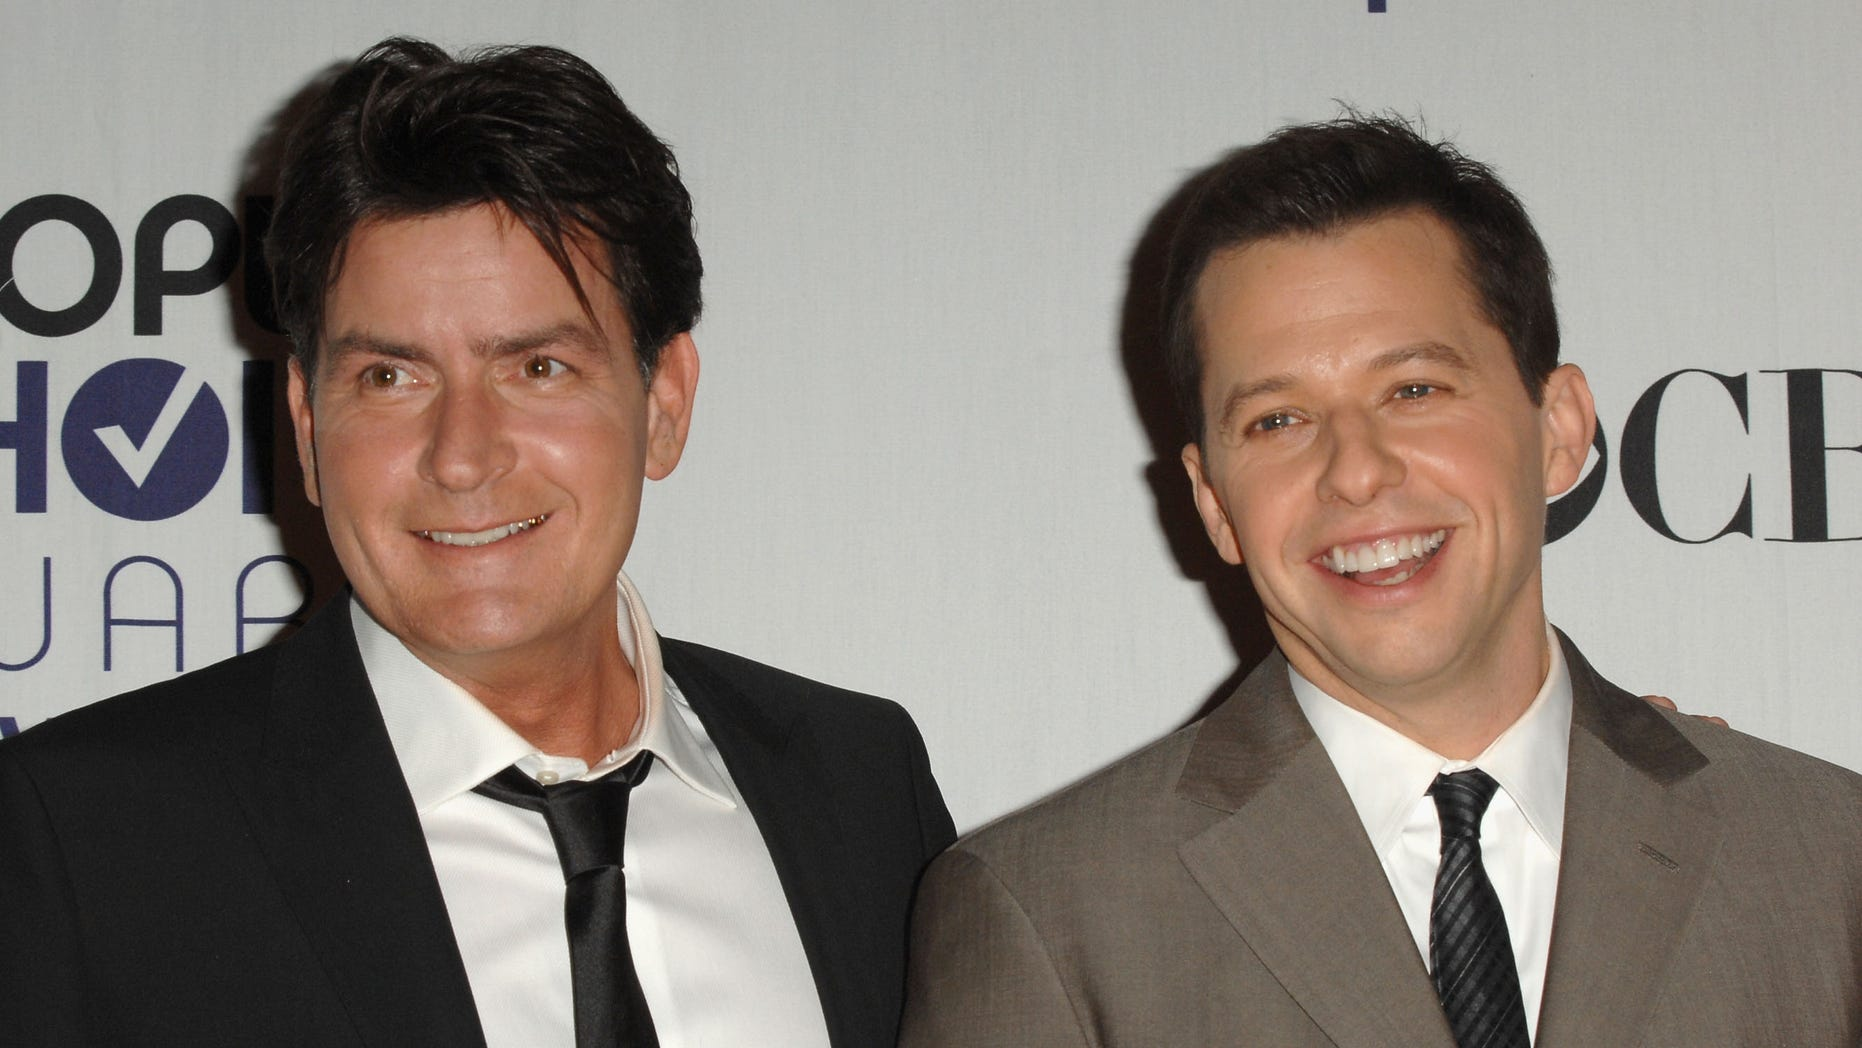 'Two and a Half Men' star Jon Cryer opened up about what it was like working with Charlie Sheen on the hit sitcom.